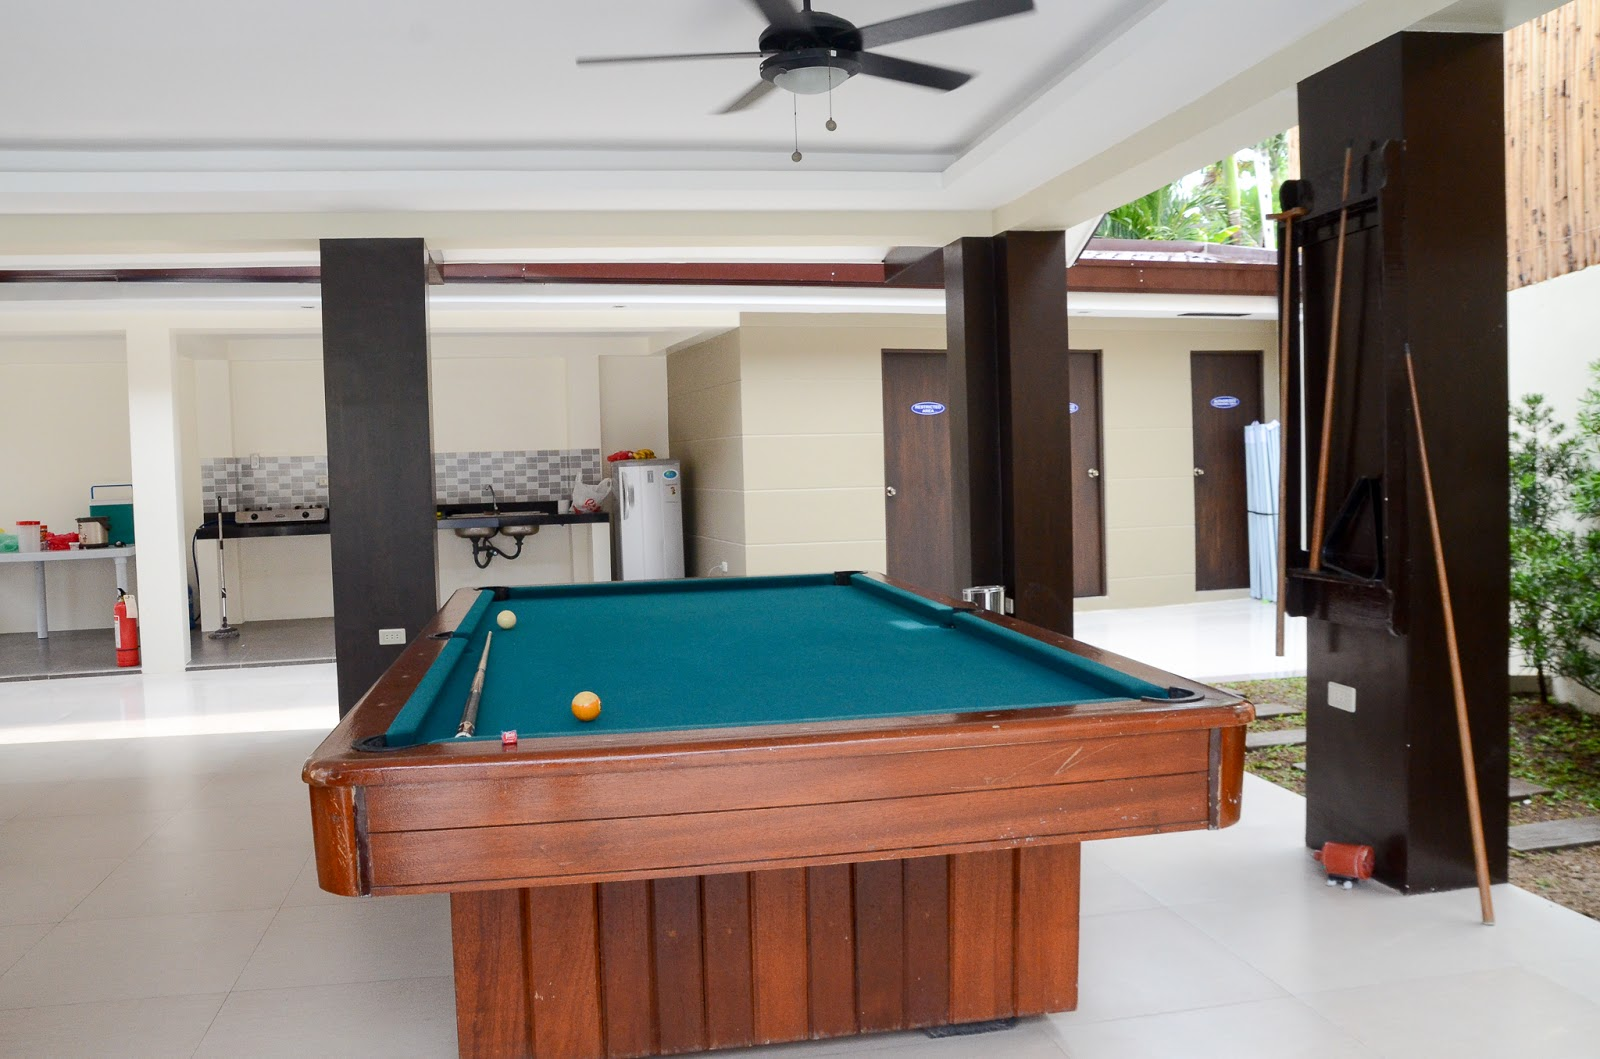 Billiard area